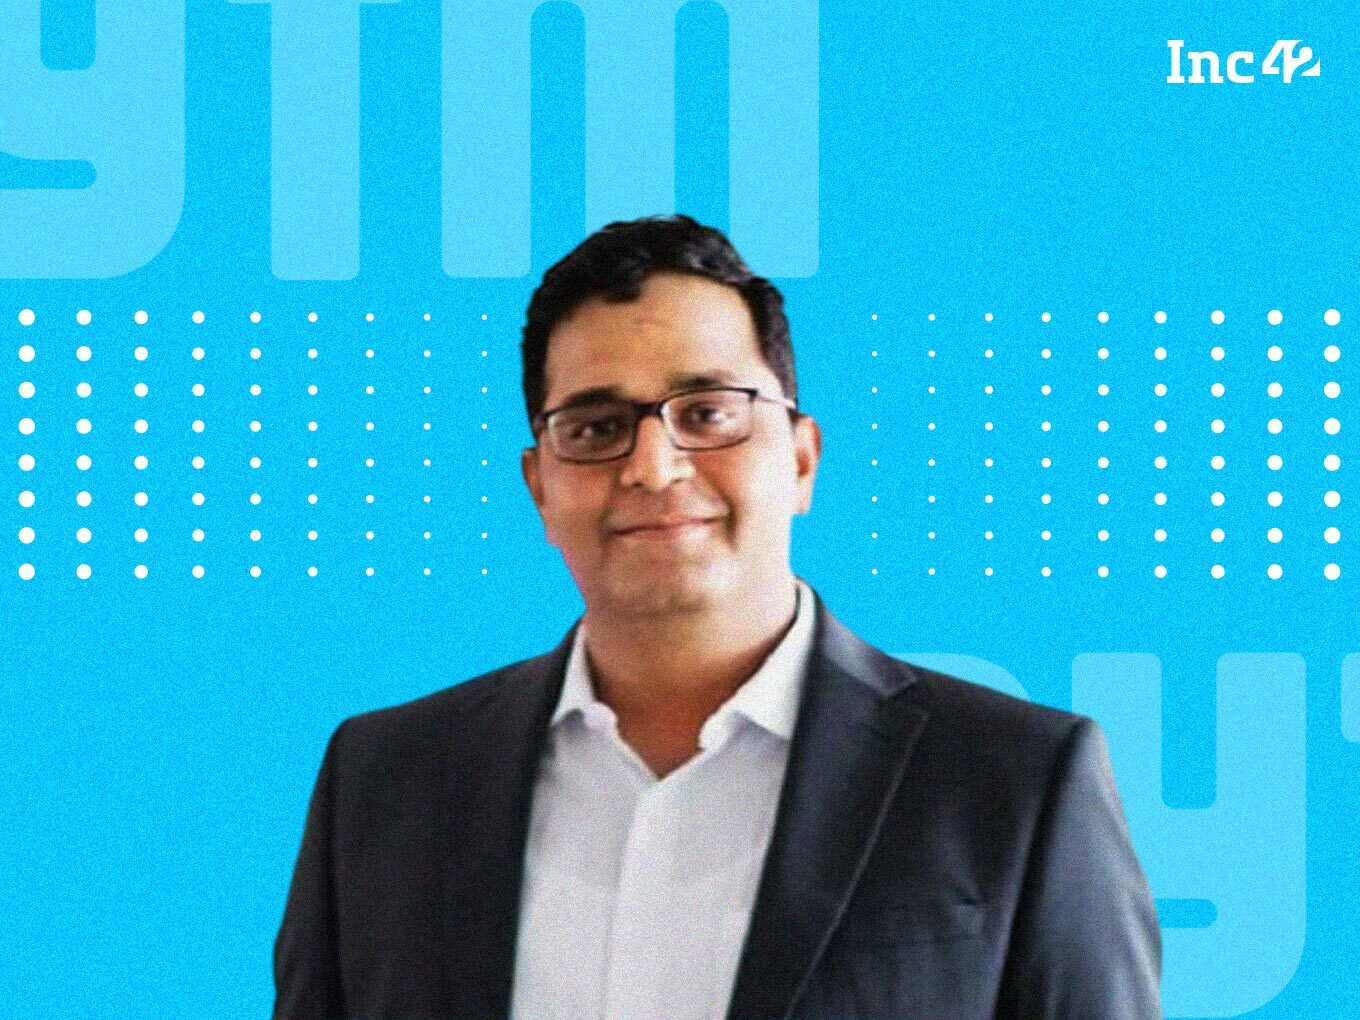 This Is India's Decade, Global Investors Want To Invest Generously Our Startups: Paytm's Vijay Shekhar Sharma